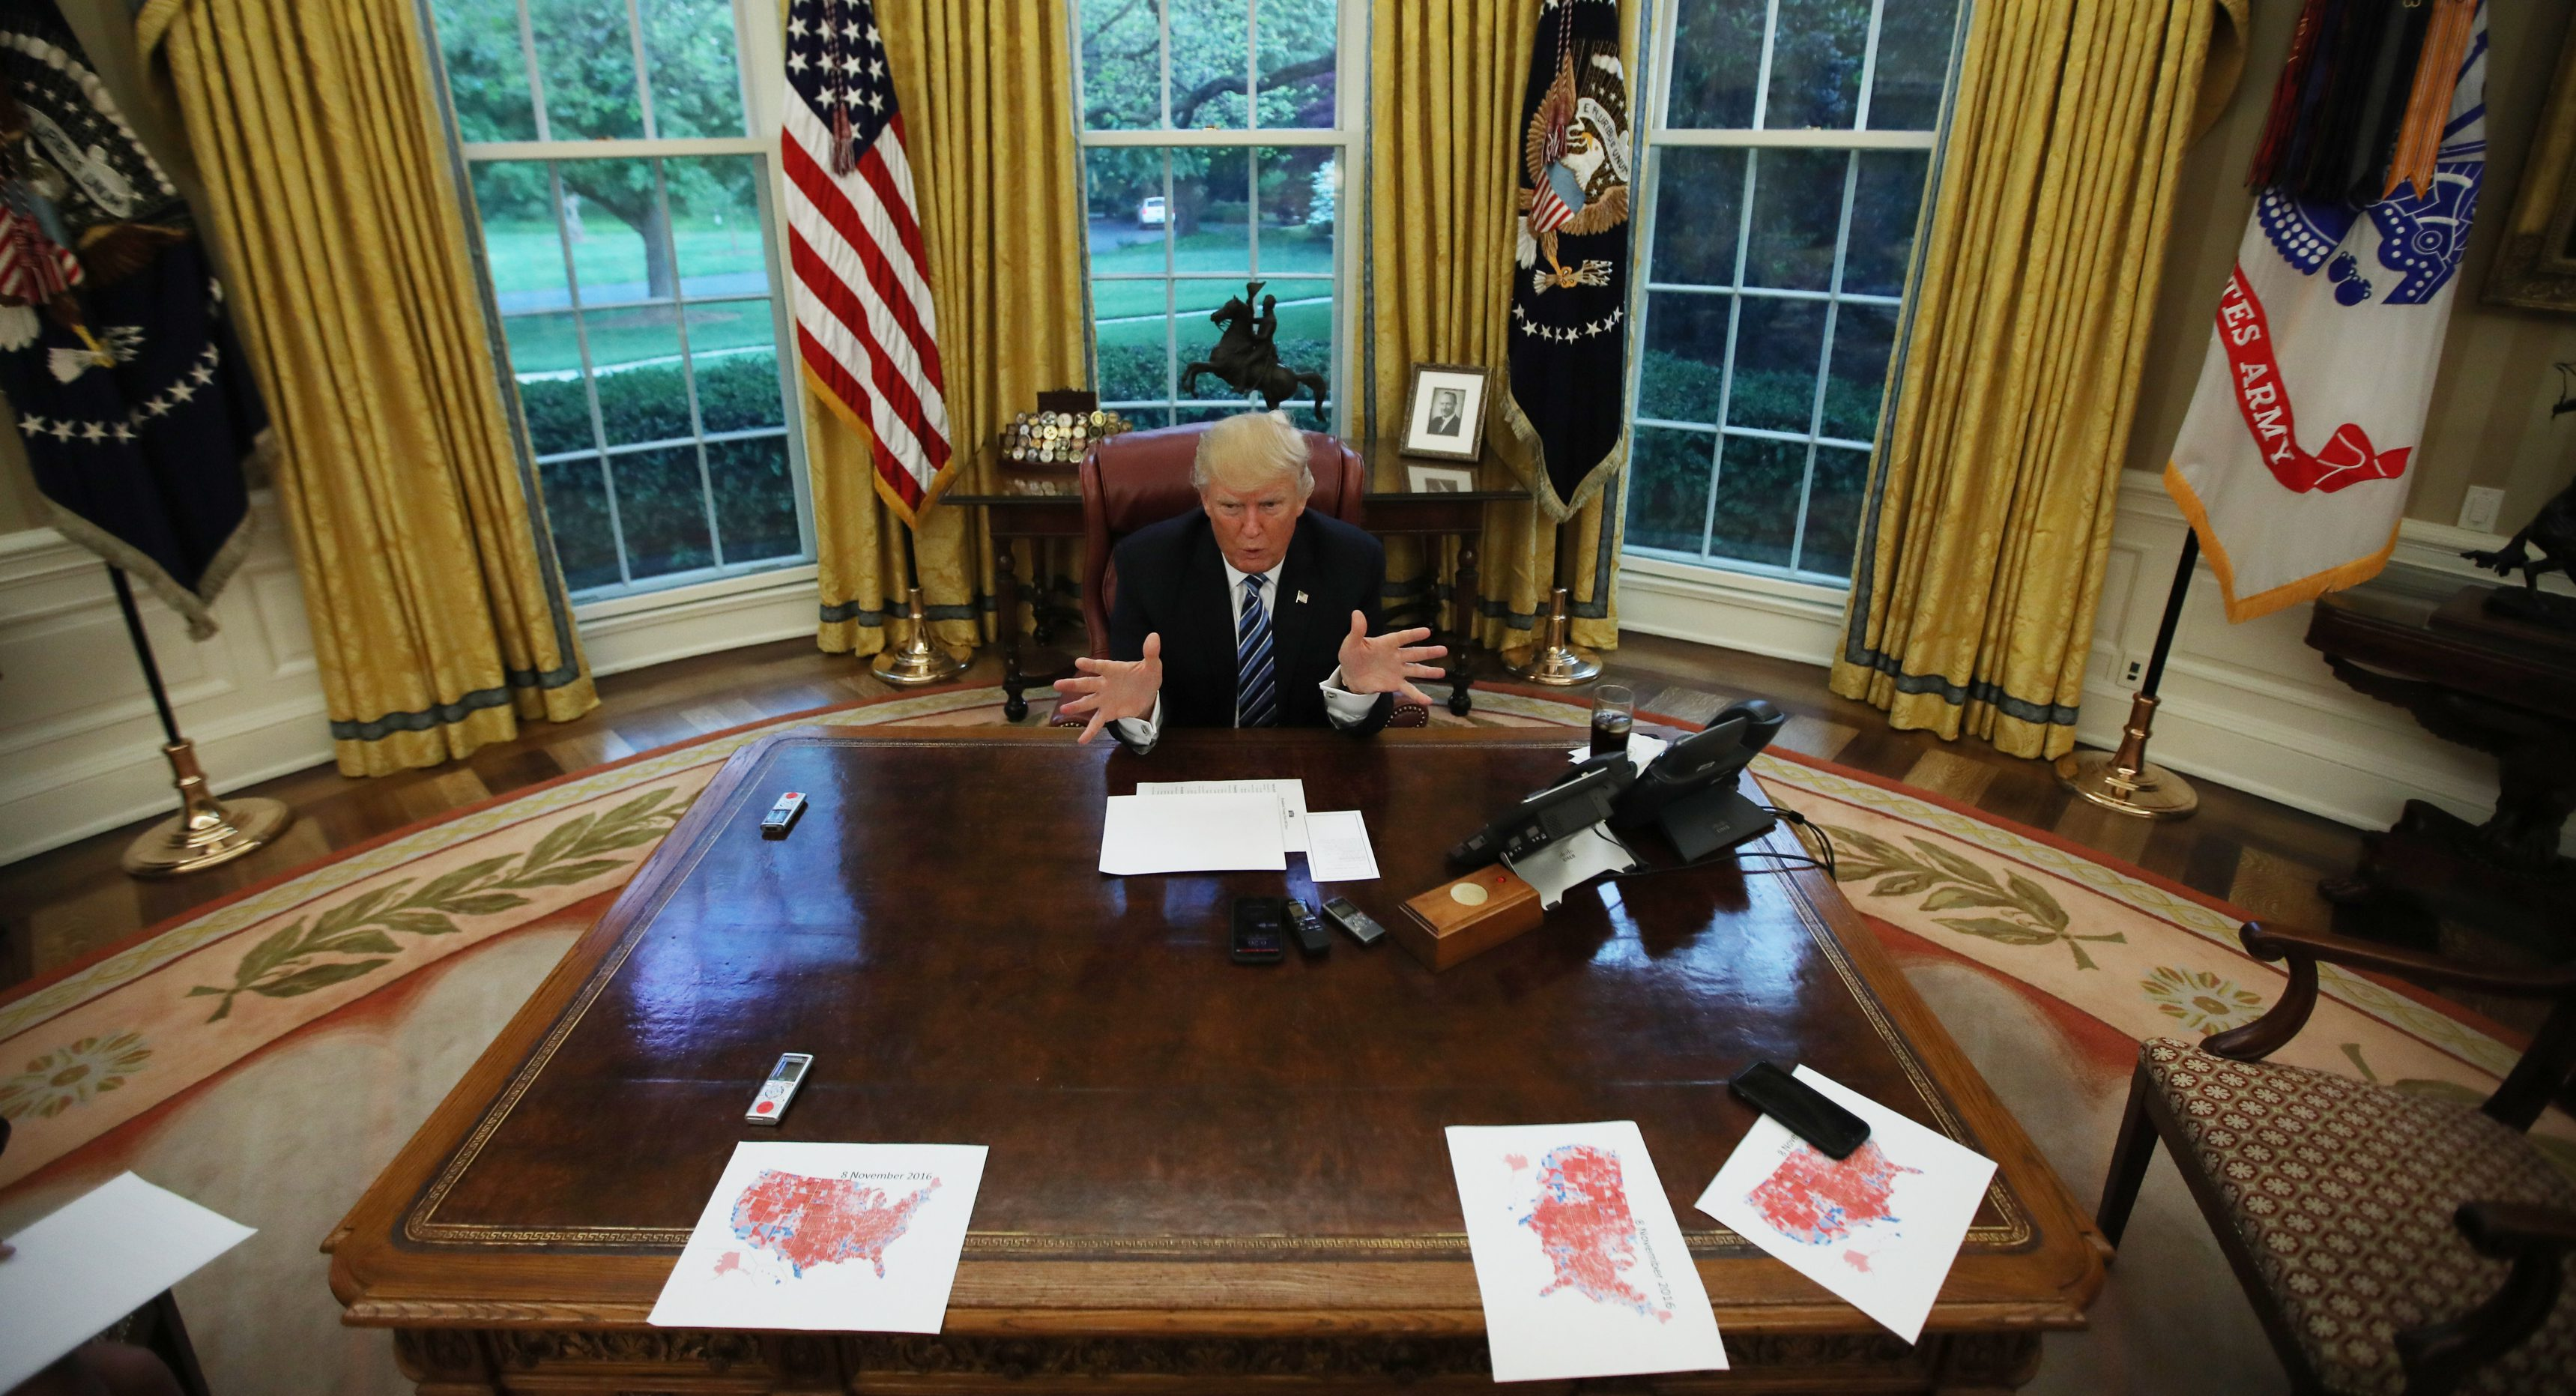 oval office photos. U.S. President Donald Trump Speaks During An Interview With Reuters In The Oval Office Of Photos